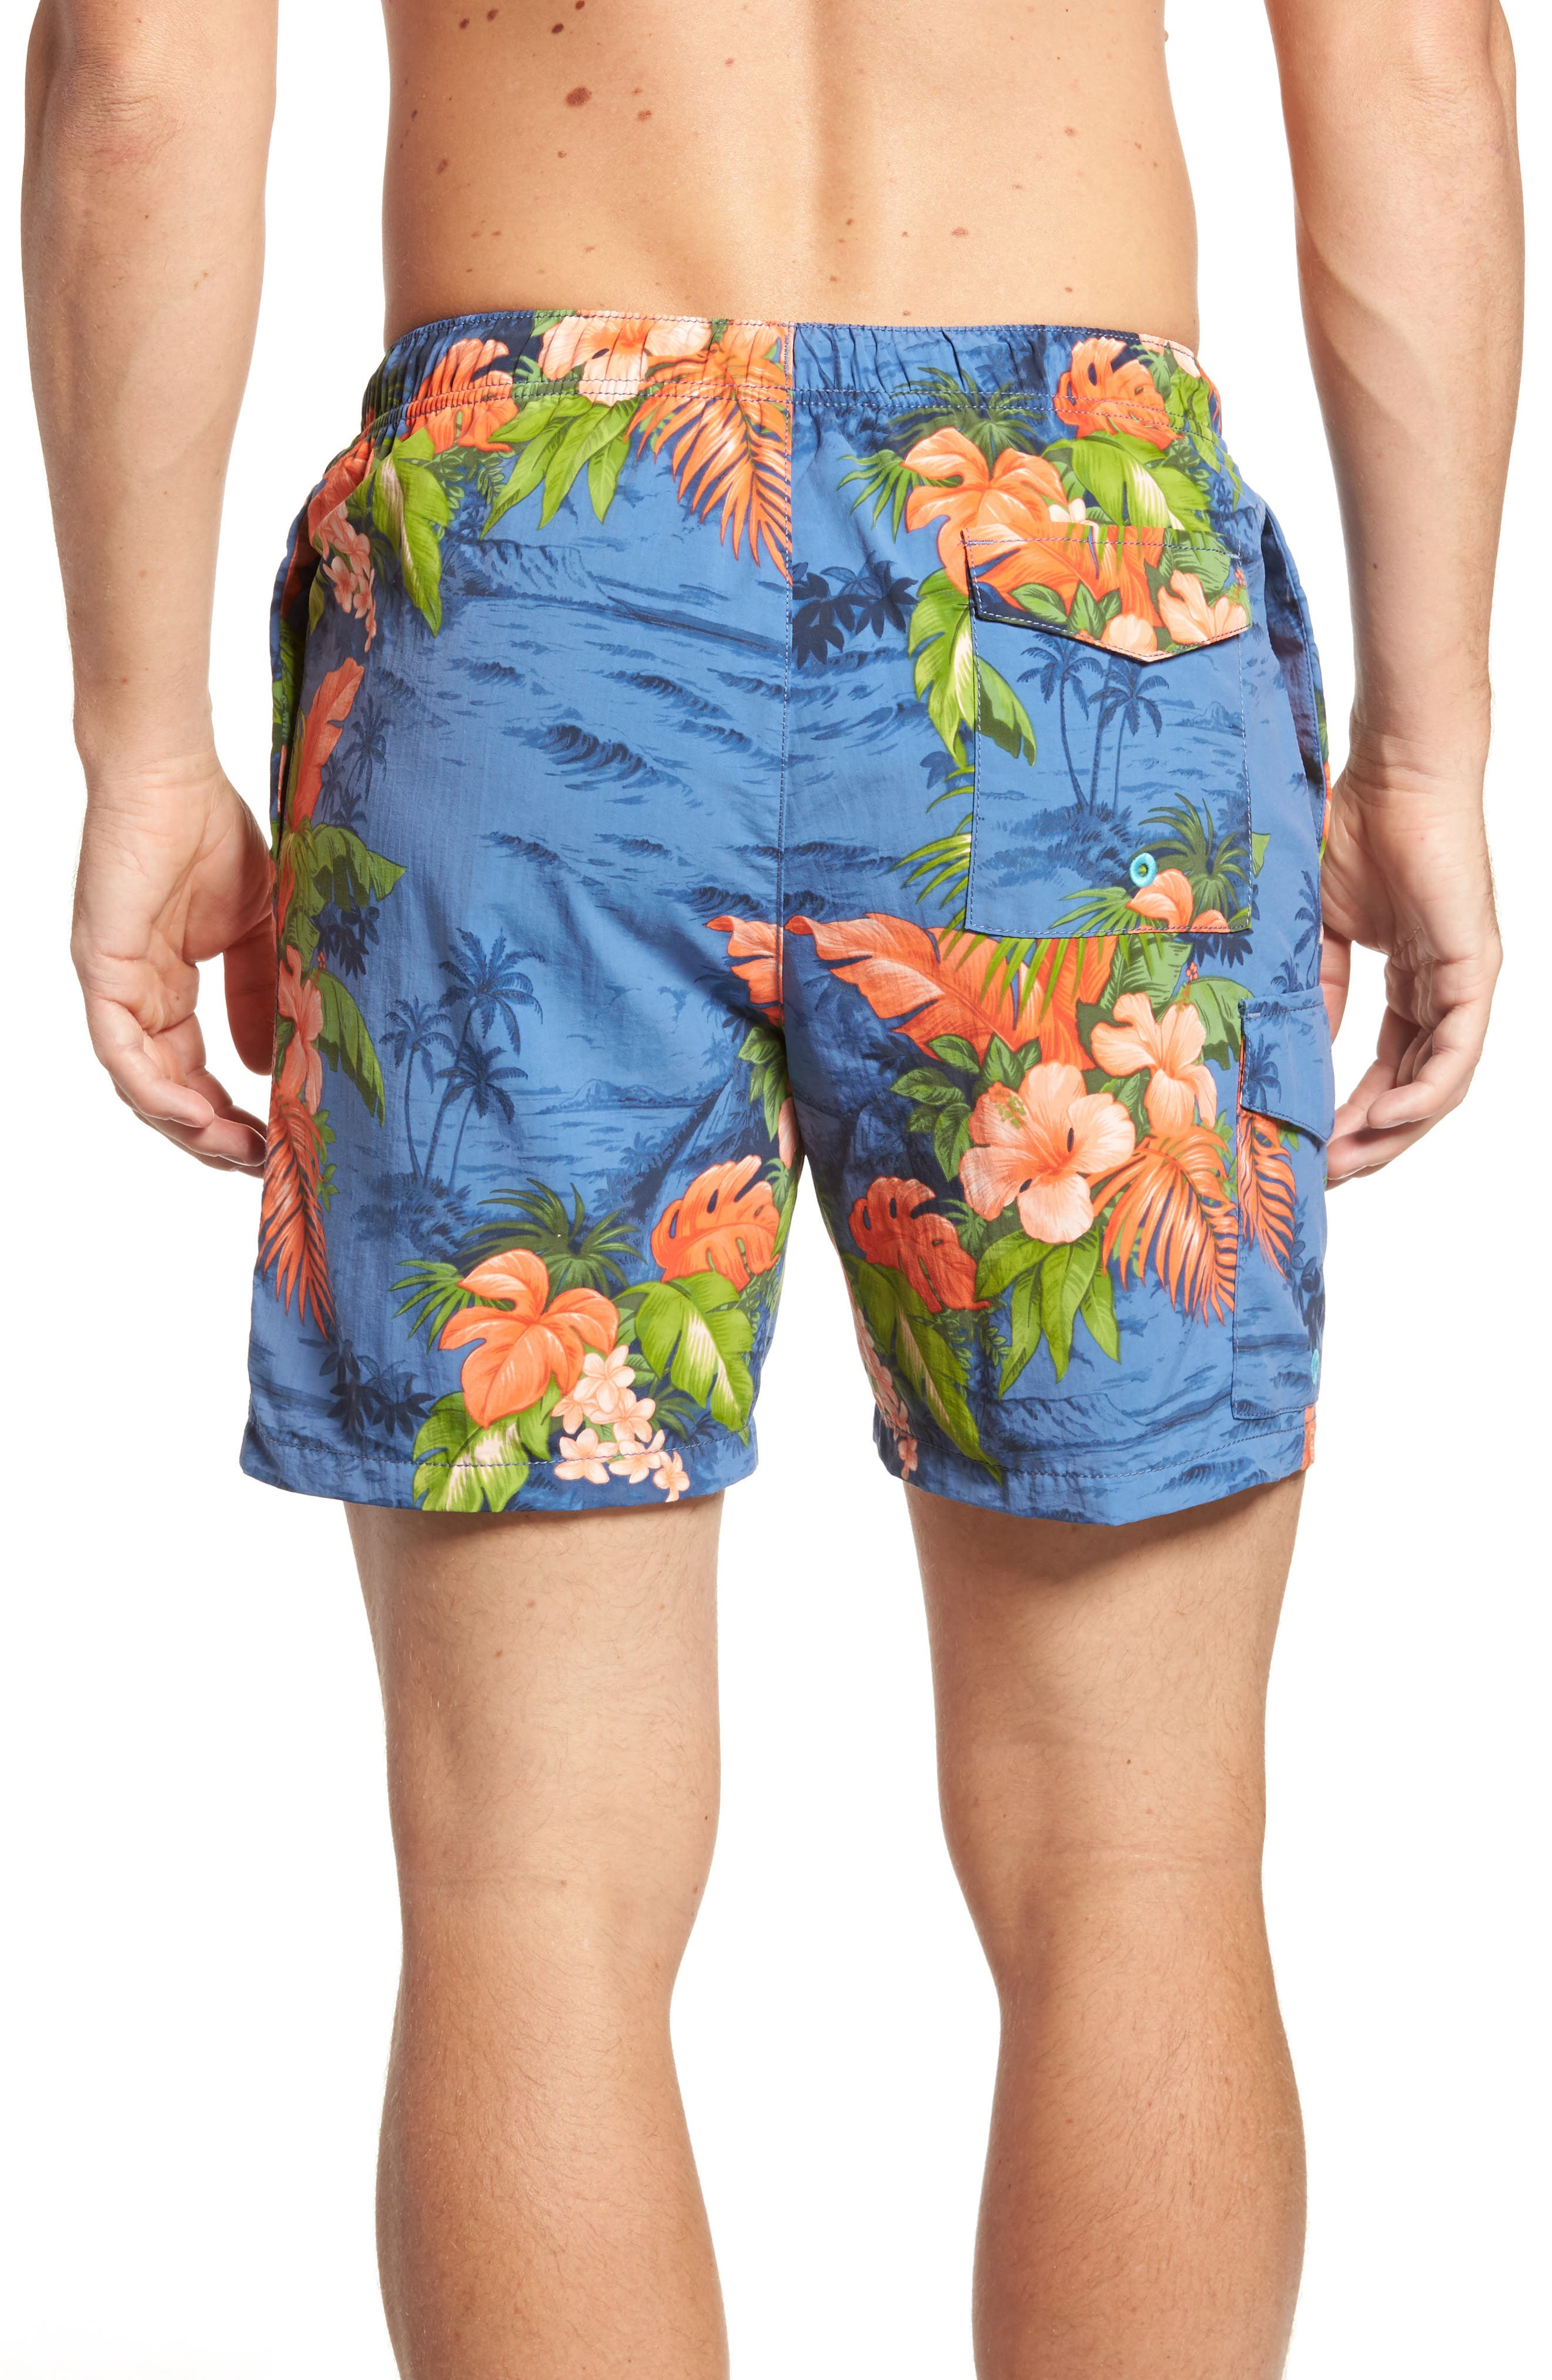 Naples Fiji Ferns Swim Trunks,                             Alternate thumbnail 2, color,                             400